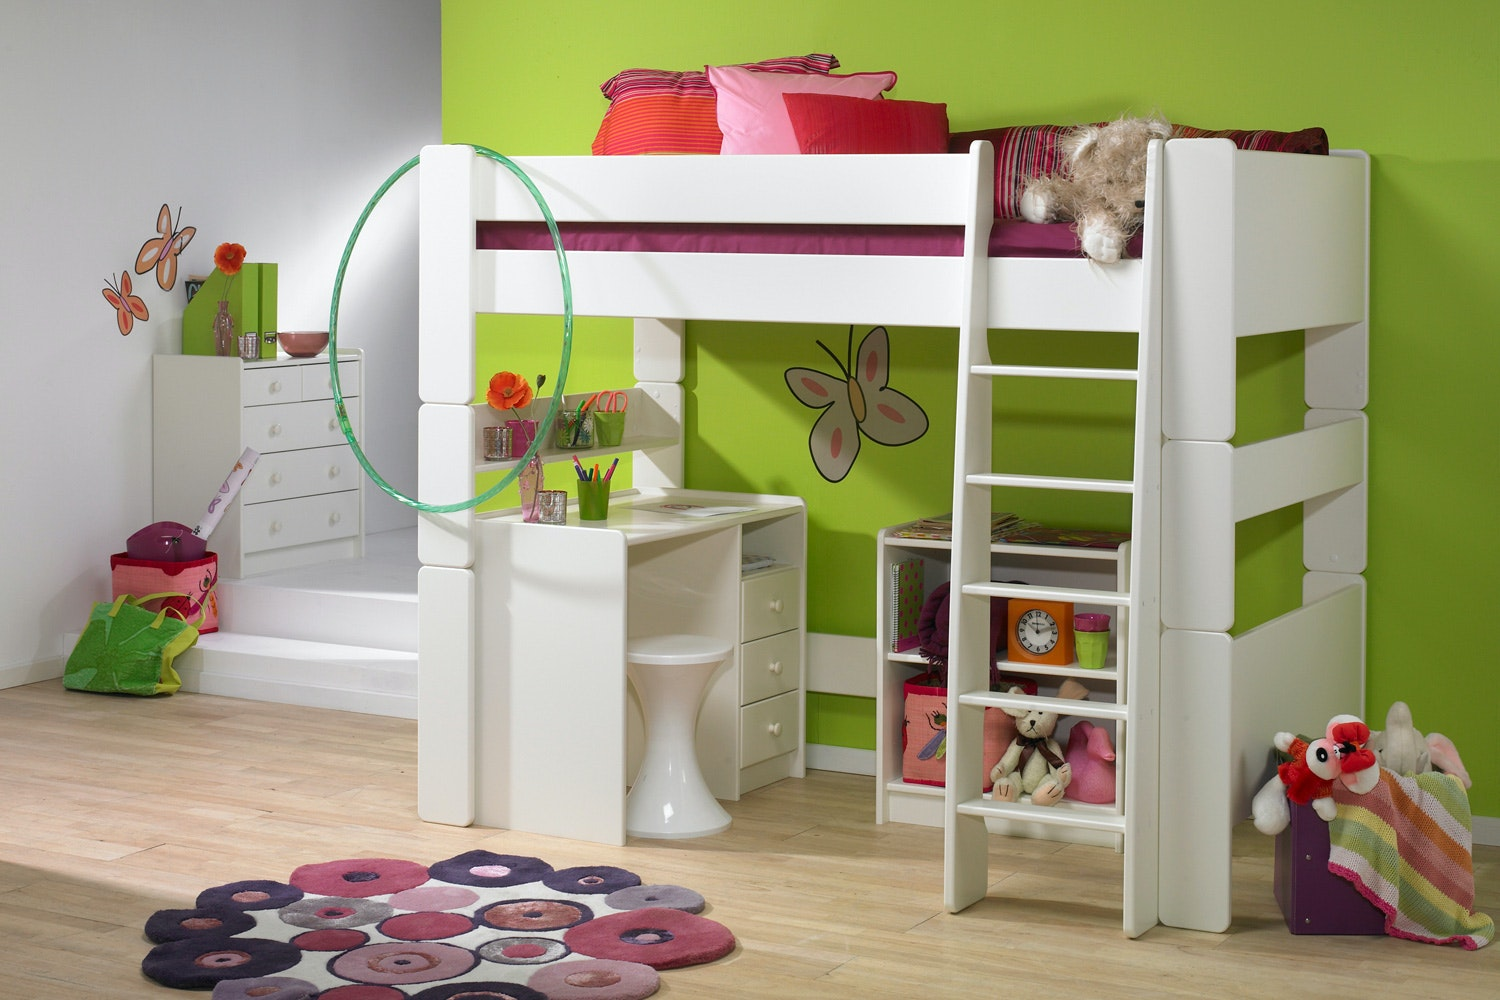 Popsicle High Sleeper Bed Frame with accessories